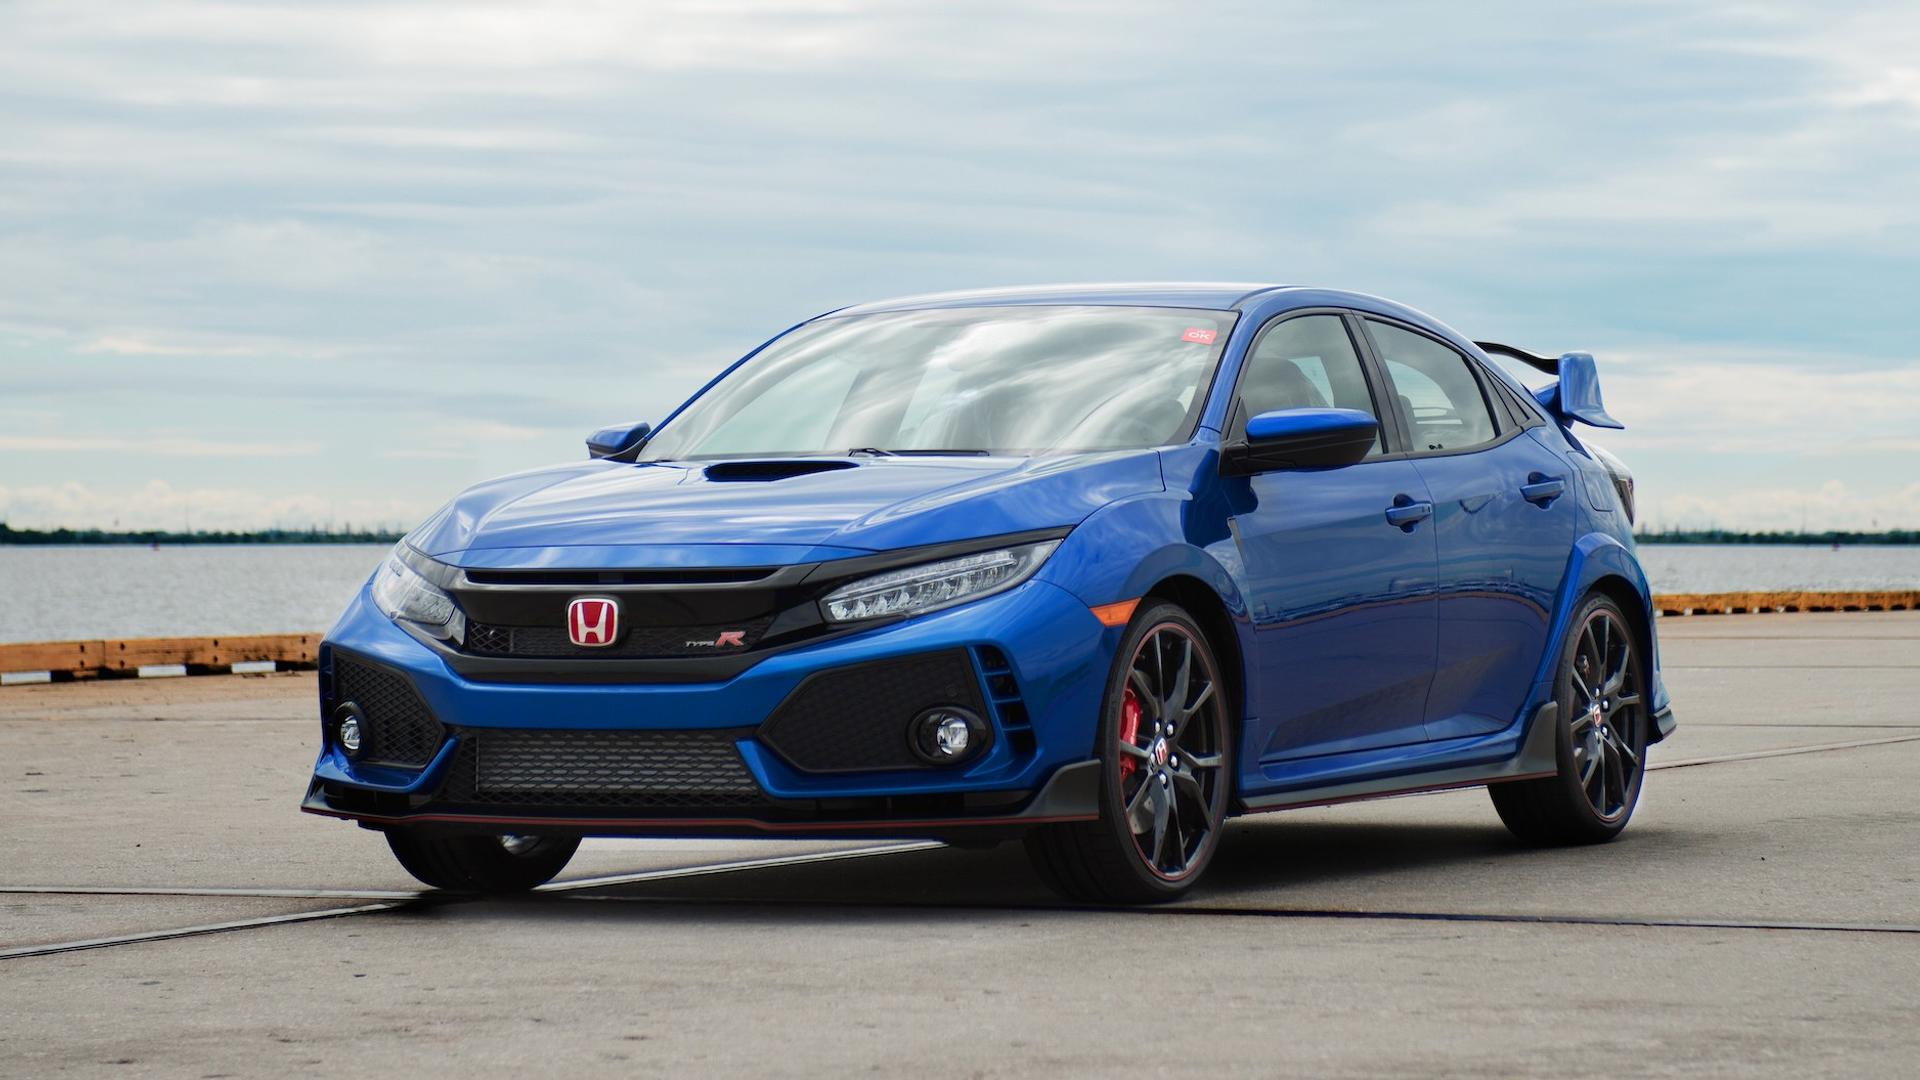 used angeles glendale county serving bl in of honda cvt htm los civic sale lx toyota for ca